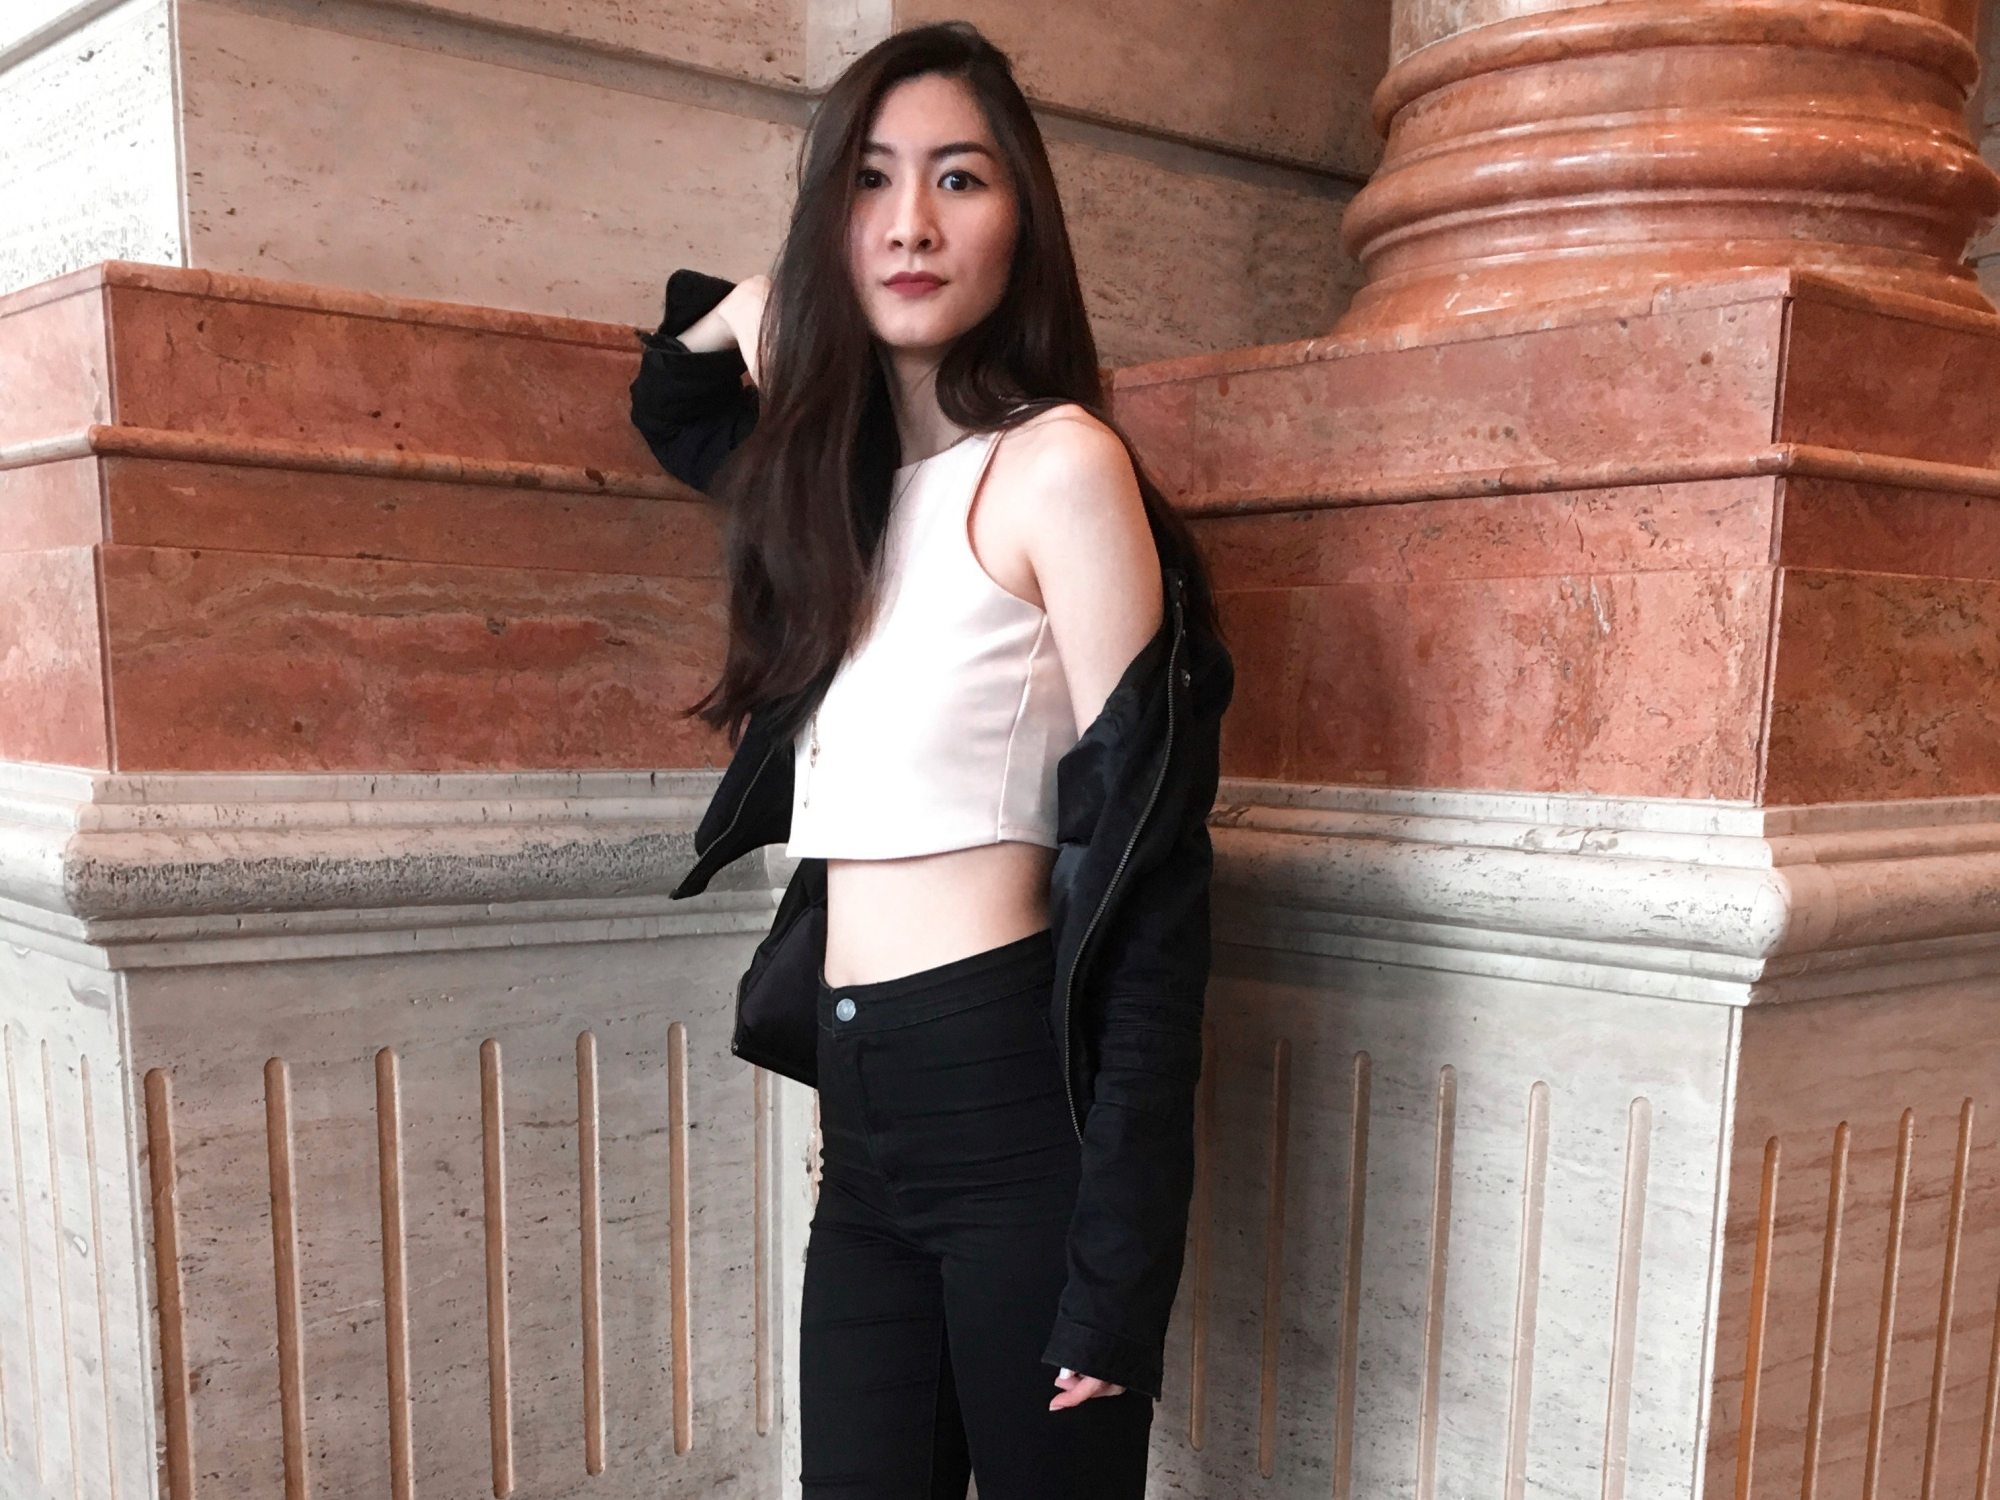 the-nat-channel-ootd-styled-by-n-jacket-crop-top-casual